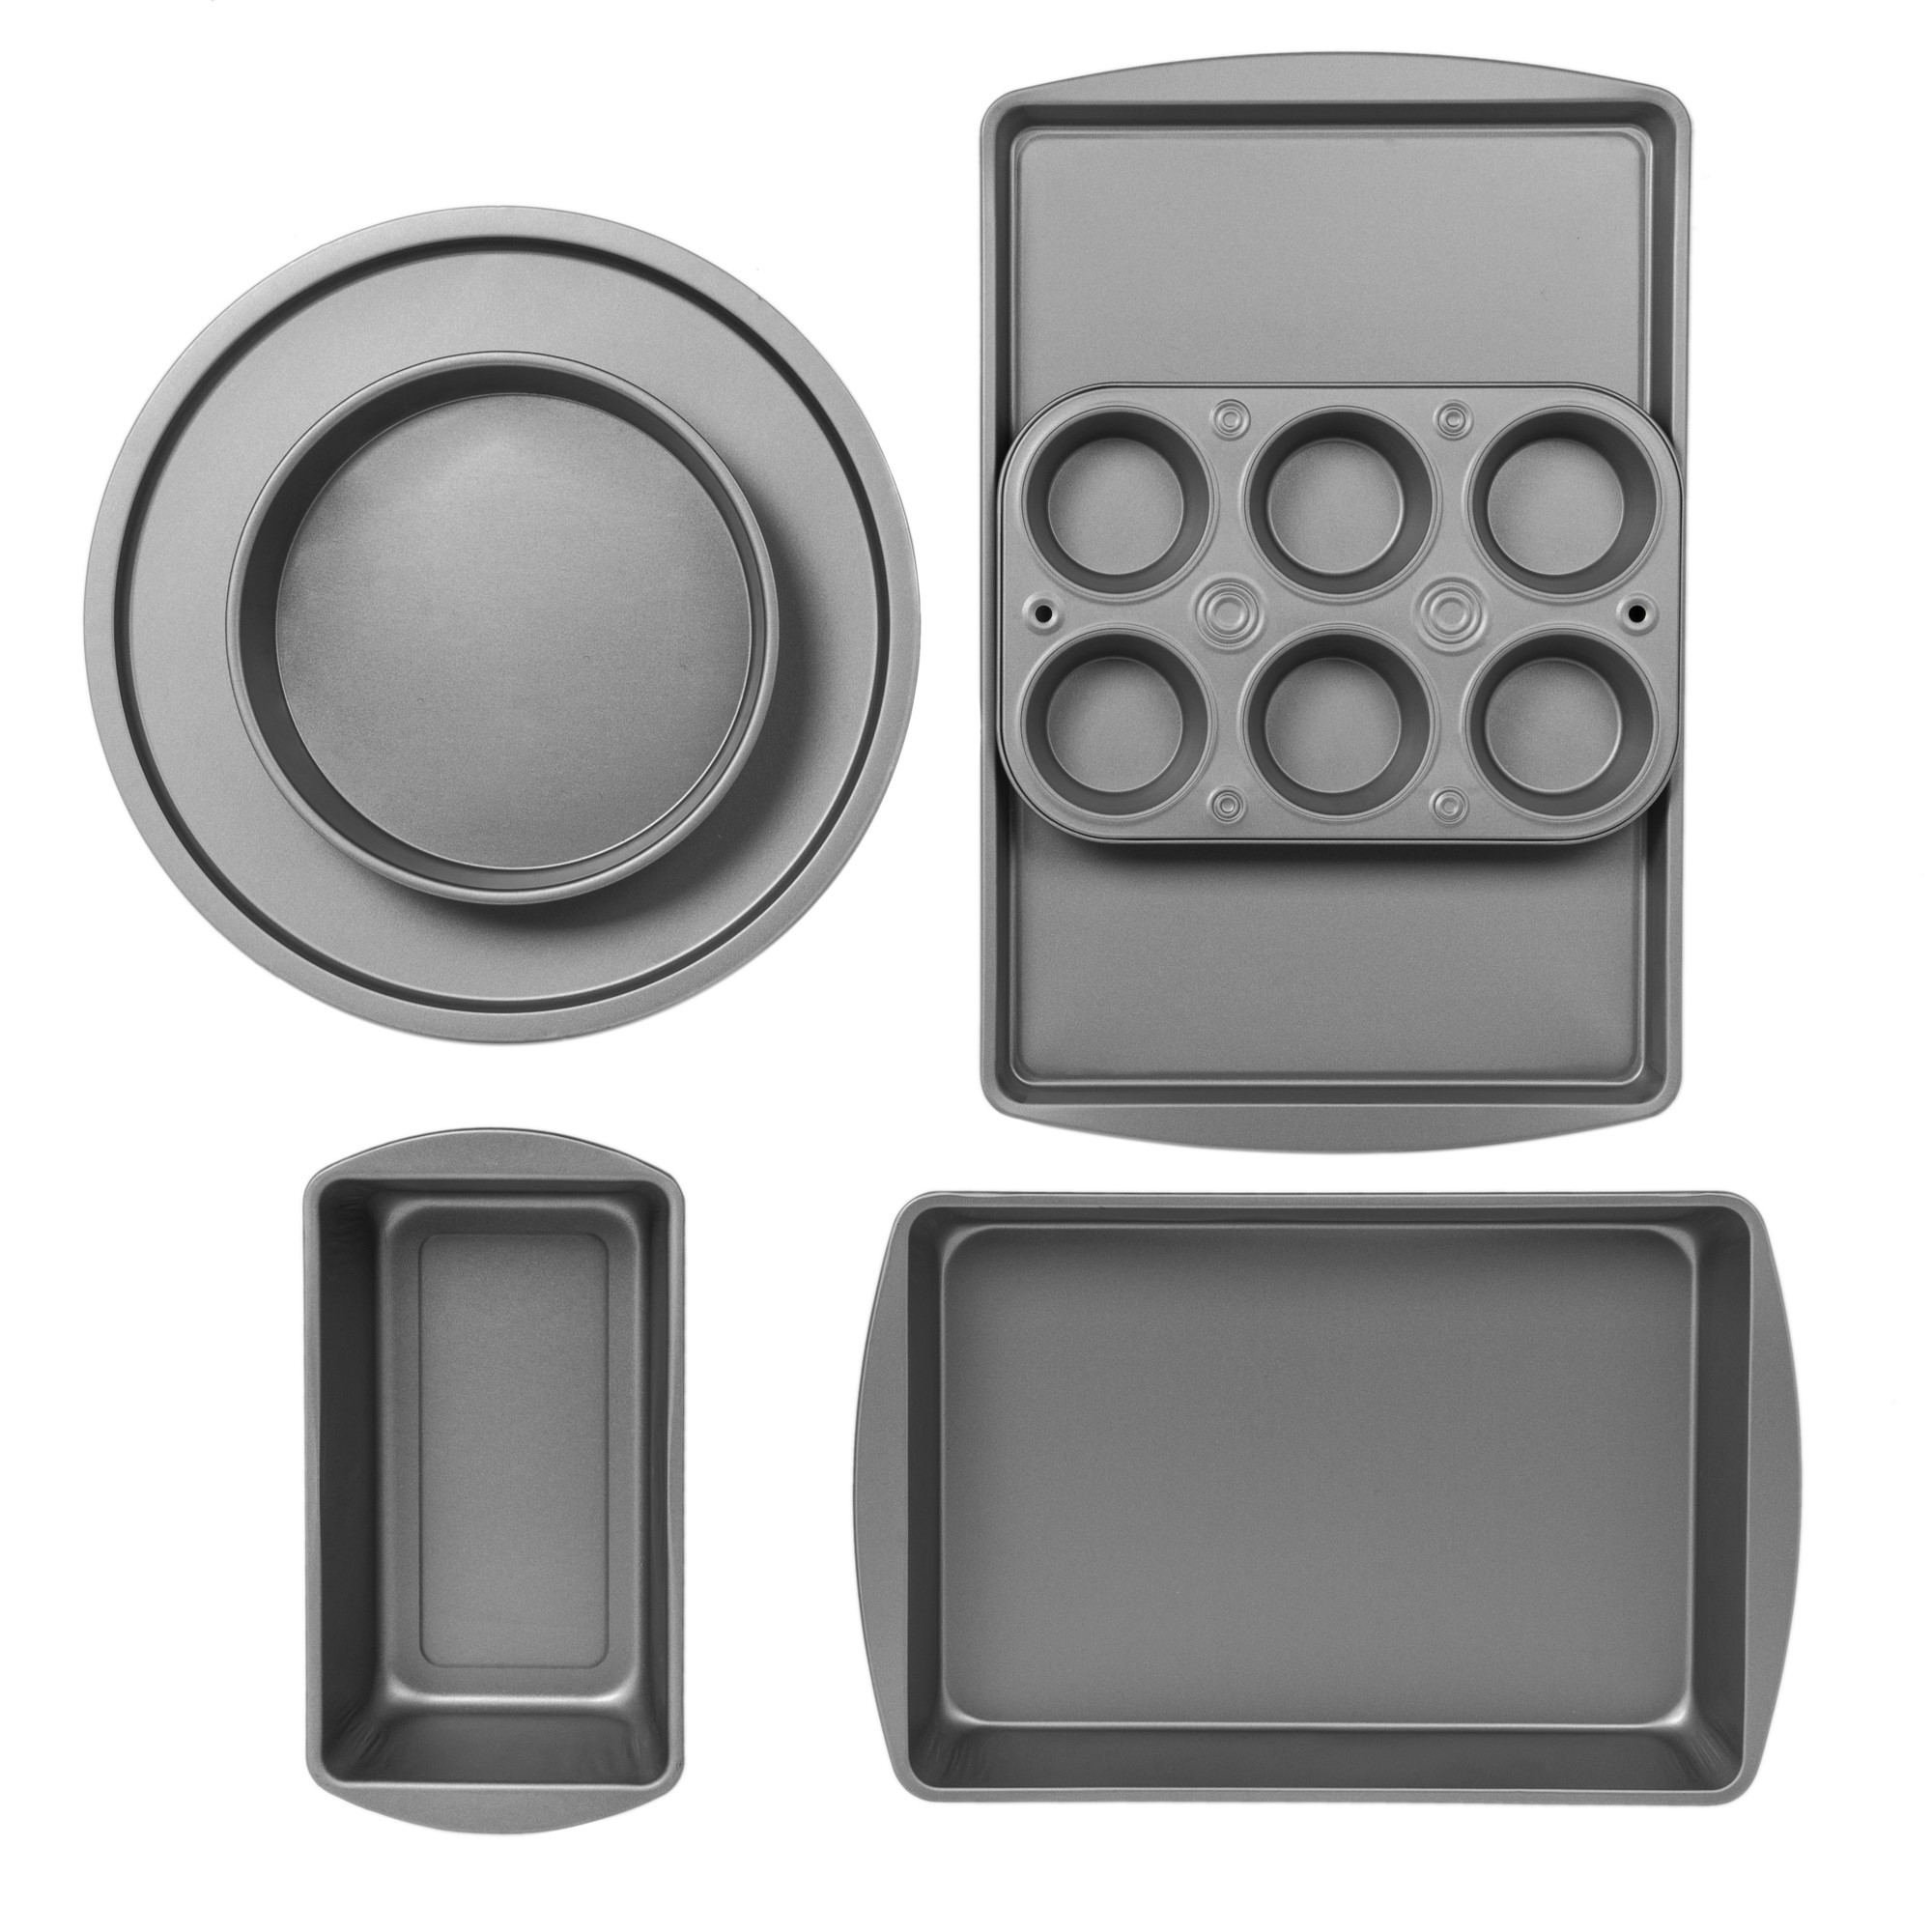 BakerEze 6-Piece Non-stick Bakeware Set, Muffin Pan, Cake and Loaf Pan, Pizza Pan, Baking Sheet